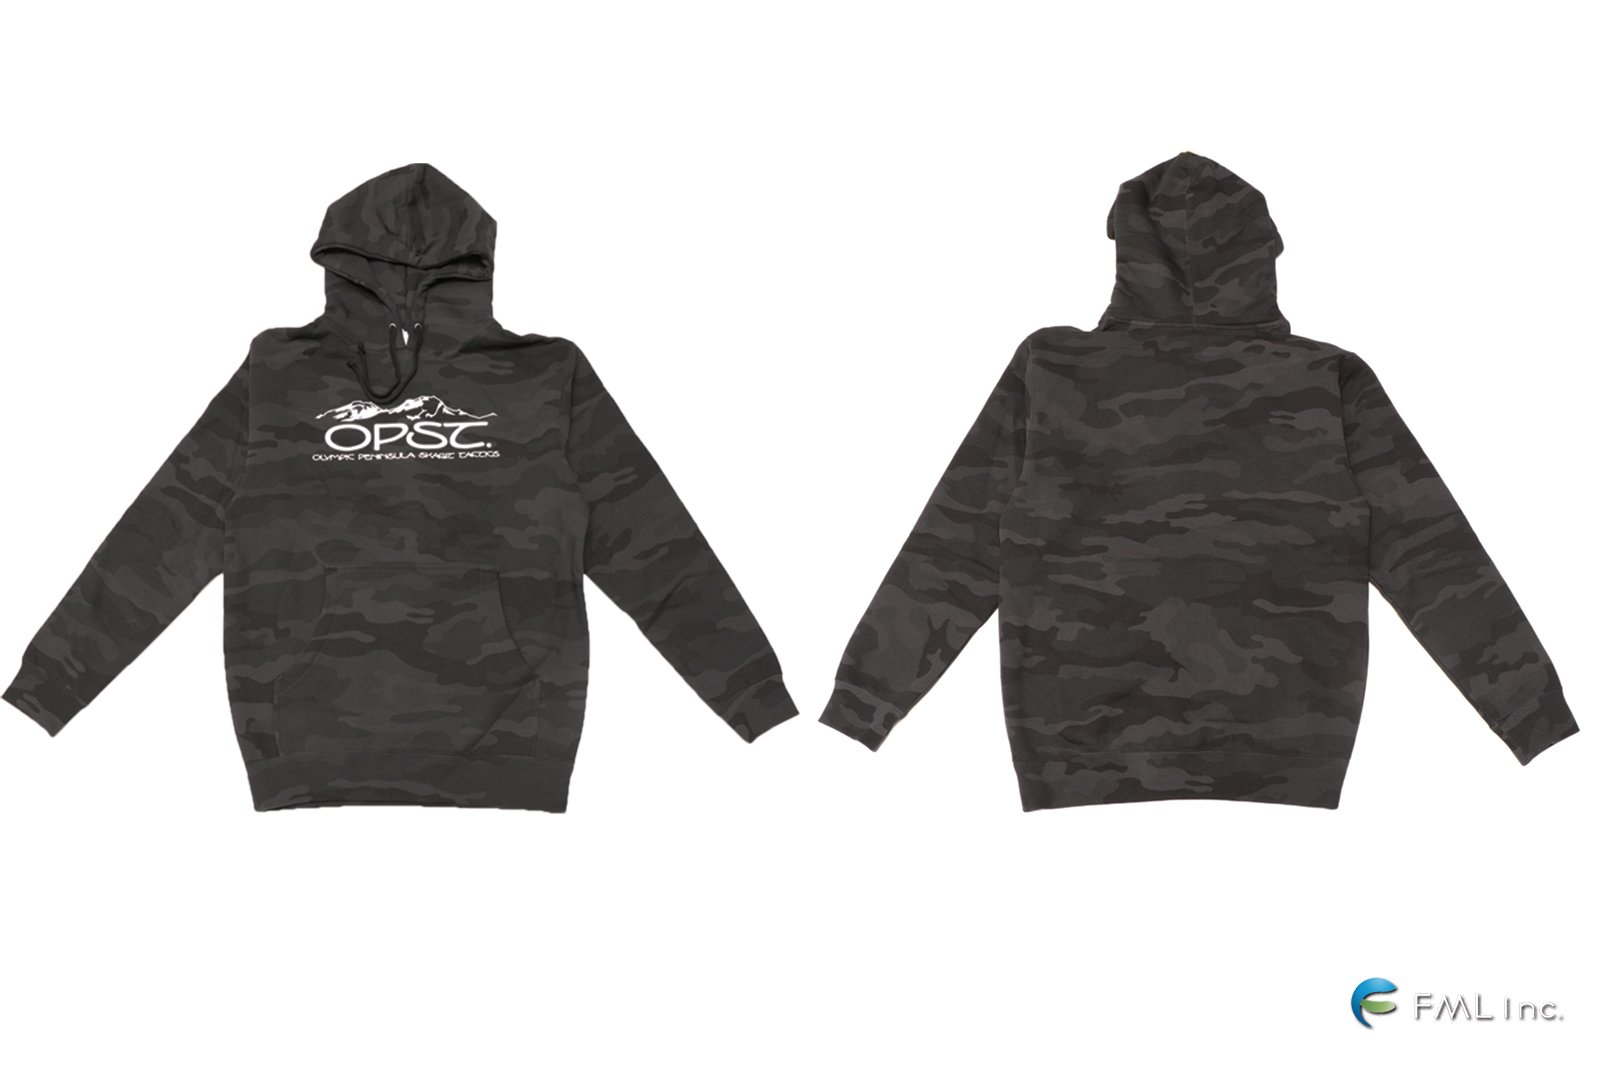 <img class='new_mark_img1' src='https://img.shop-pro.jp/img/new/icons5.gif' style='border:none;display:inline;margin:0px;padding:0px;width:auto;' />OPST Hoodie (black camo opst logo)